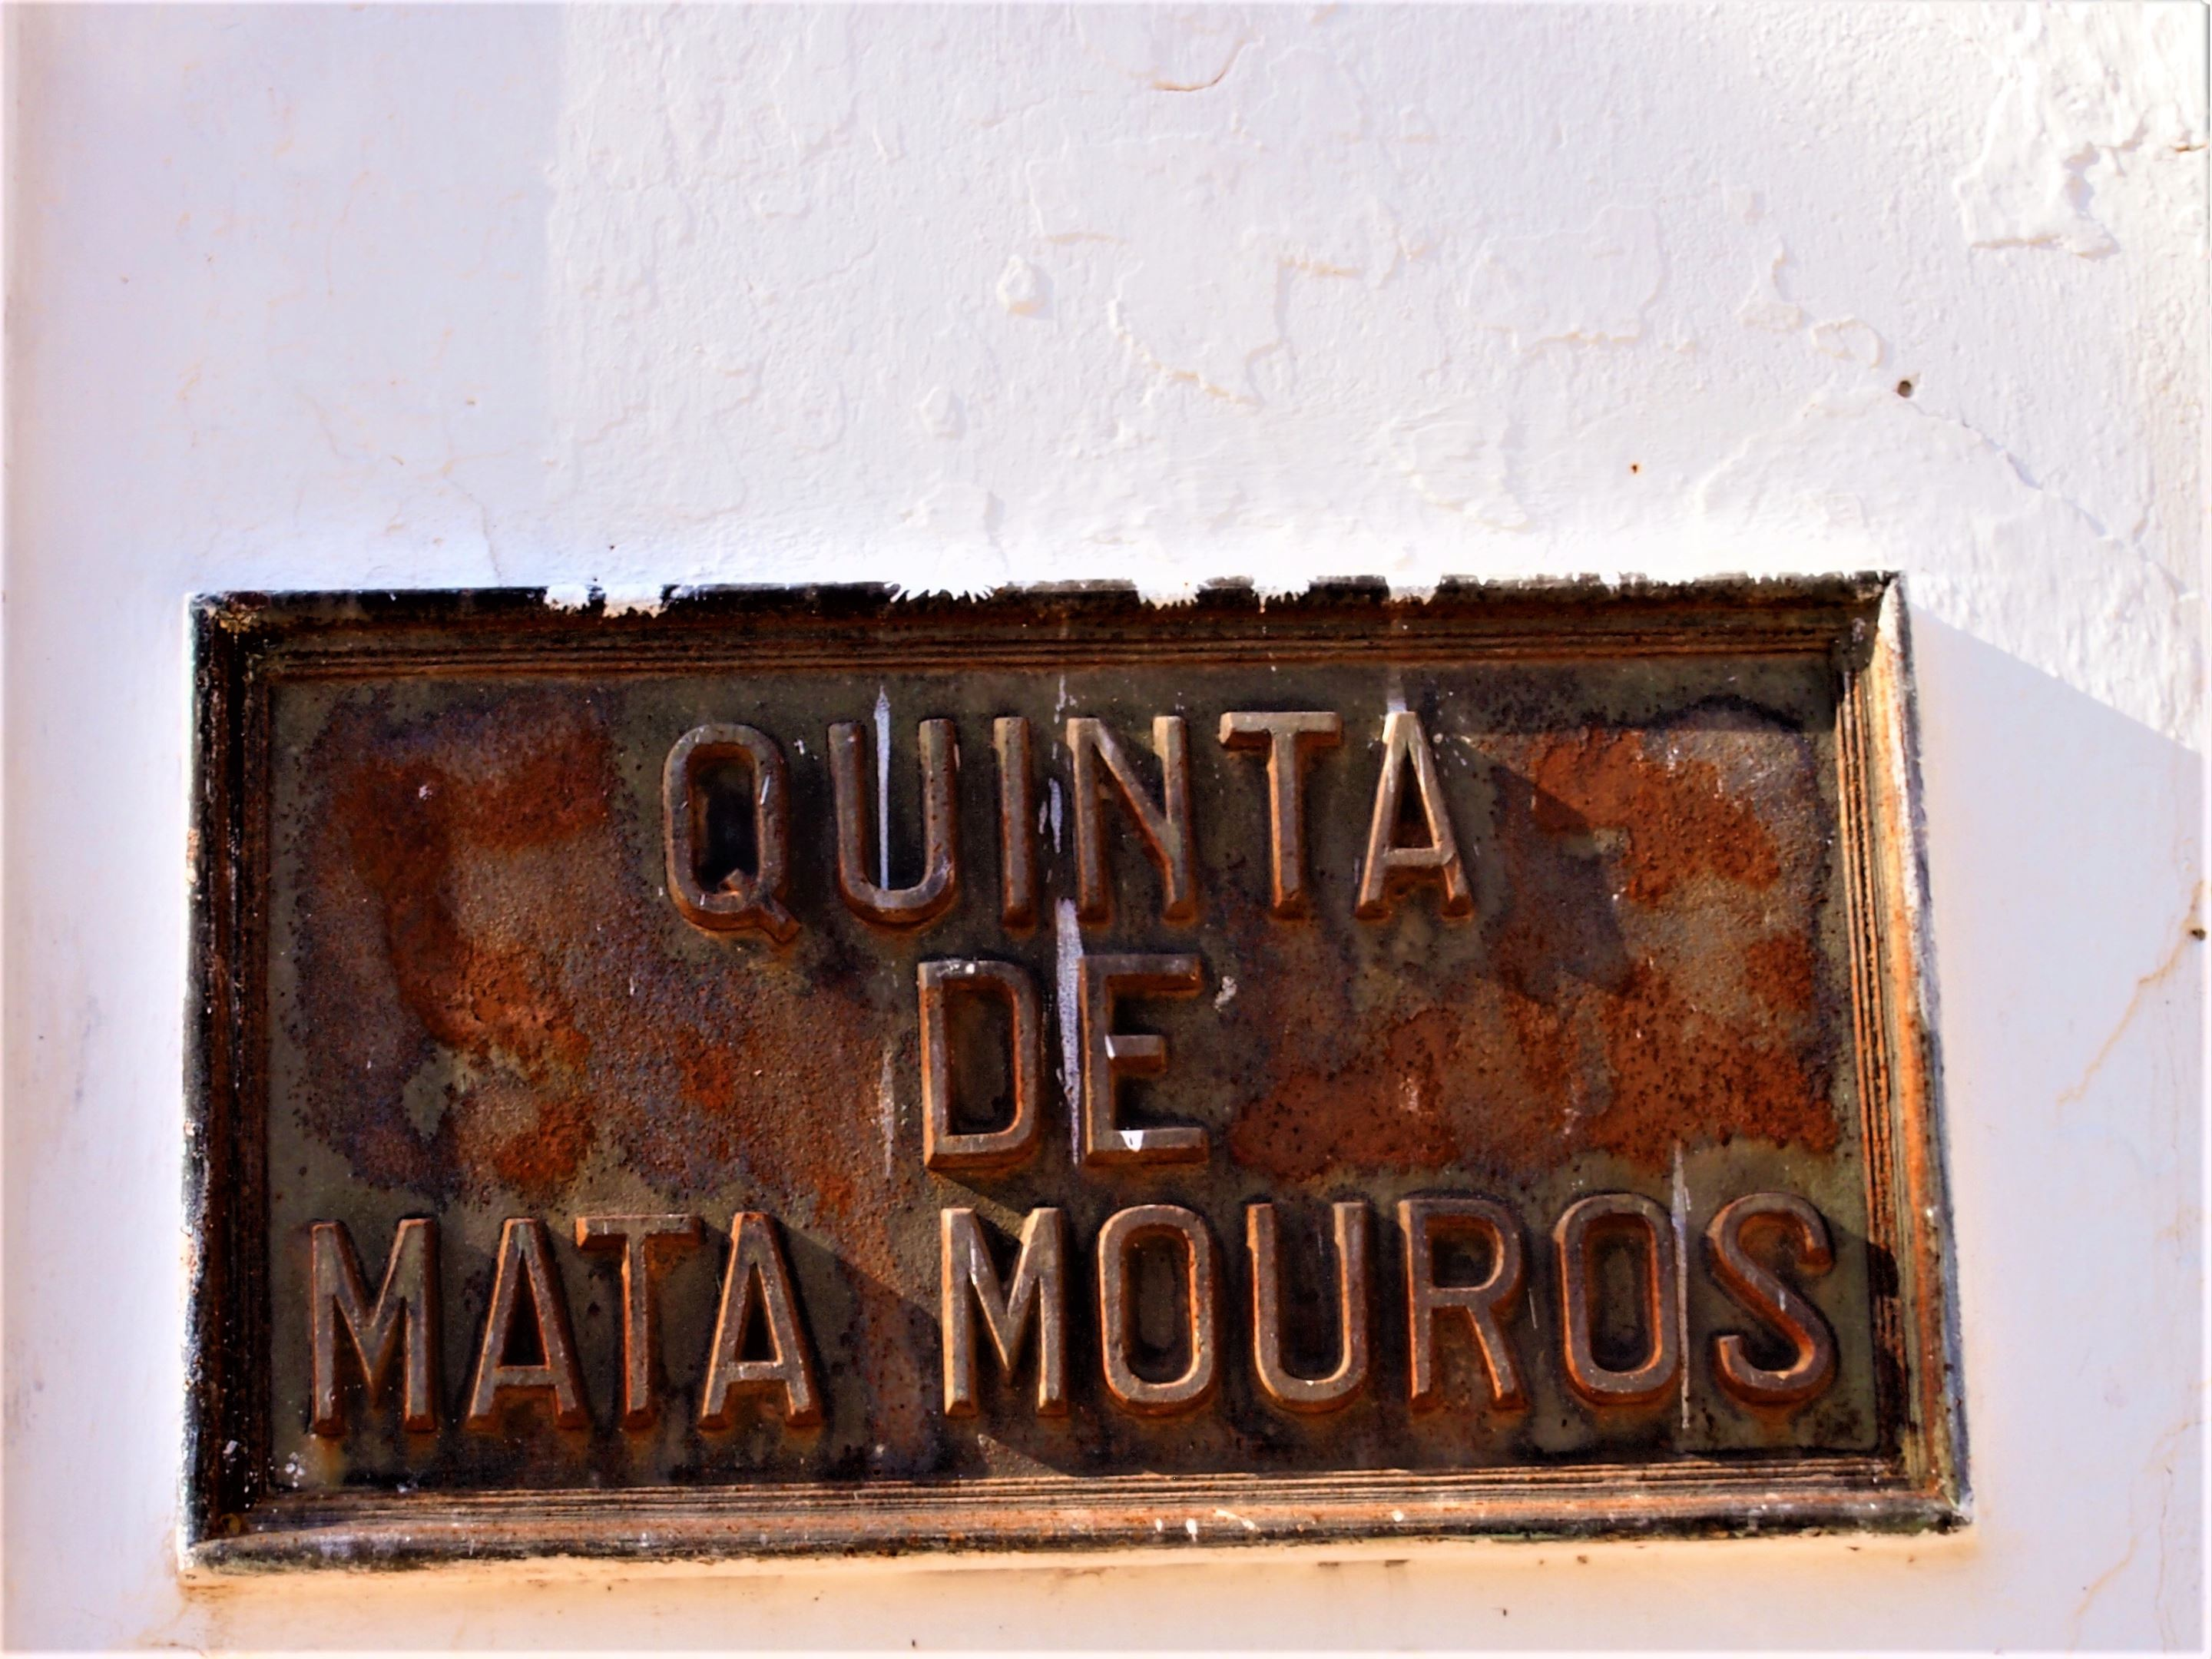 Quinta de Mata Mouros. Vineyard on the south bank of the Arade River opposite Silves.